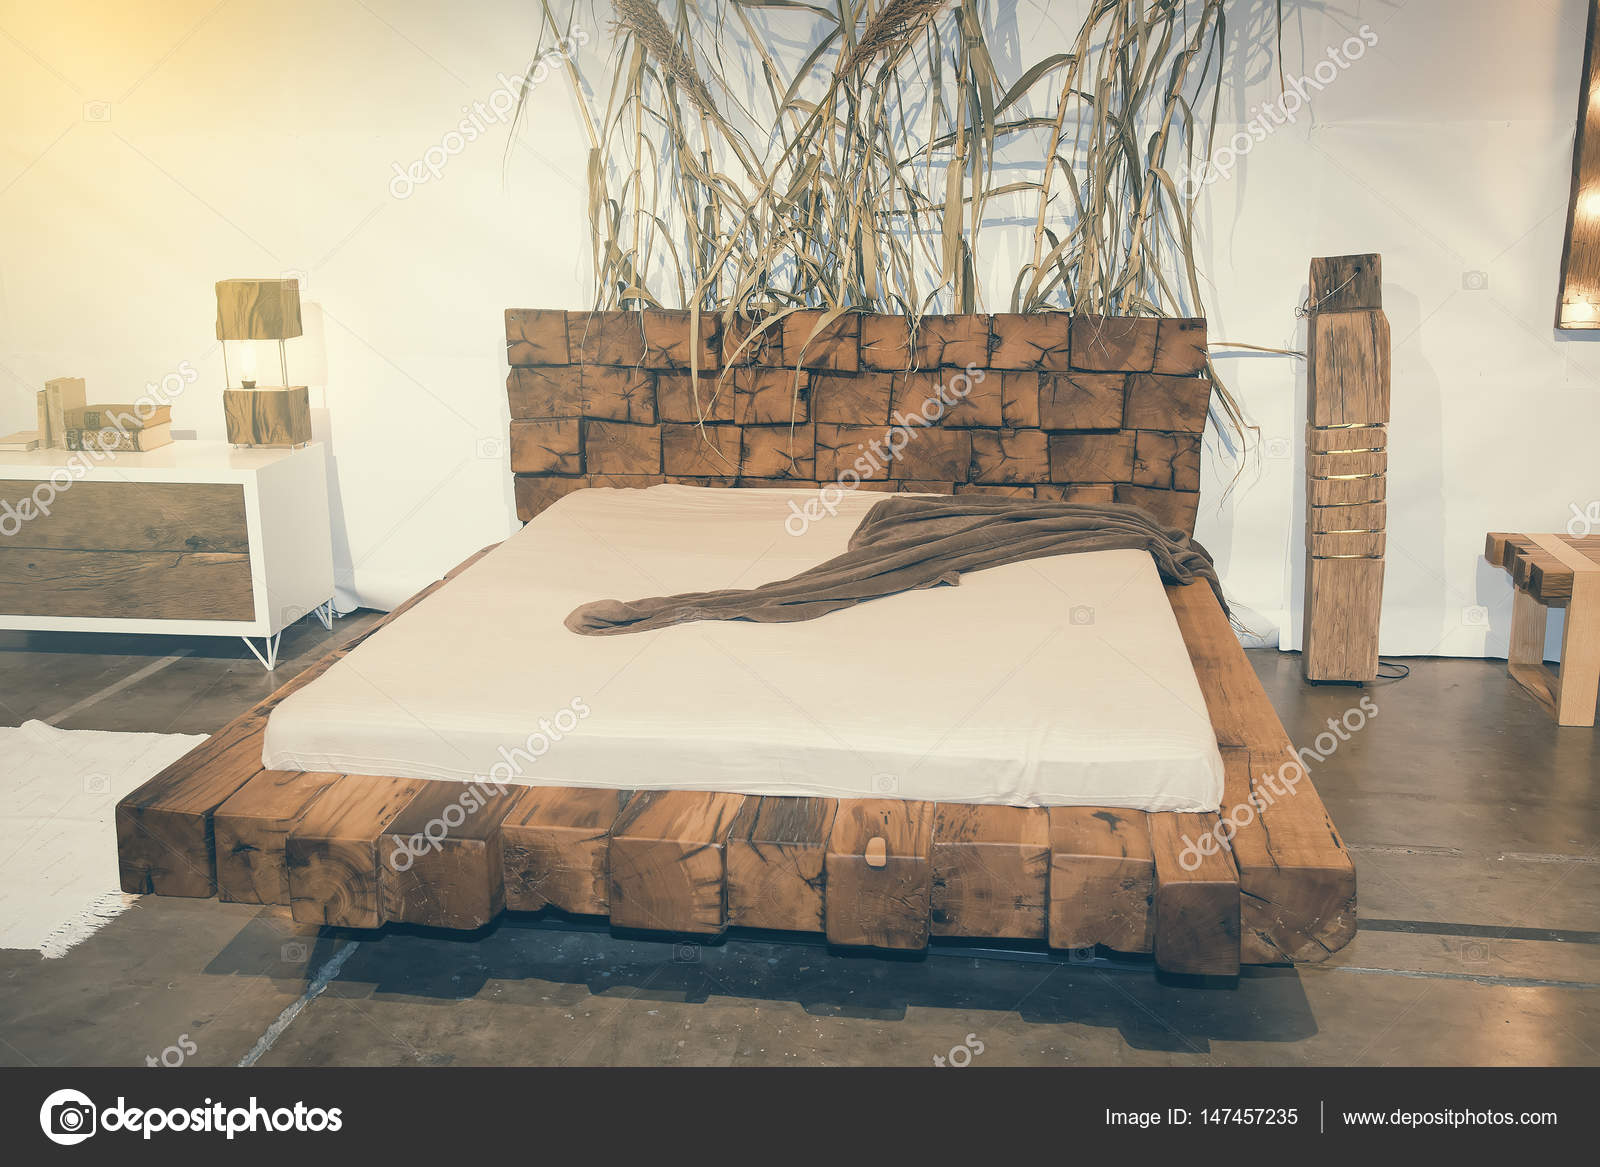 Beautiful Bedroom With Wooden Bed At Furniture Fair 2 Stock Editorial Photo C Kataklinger 147457235